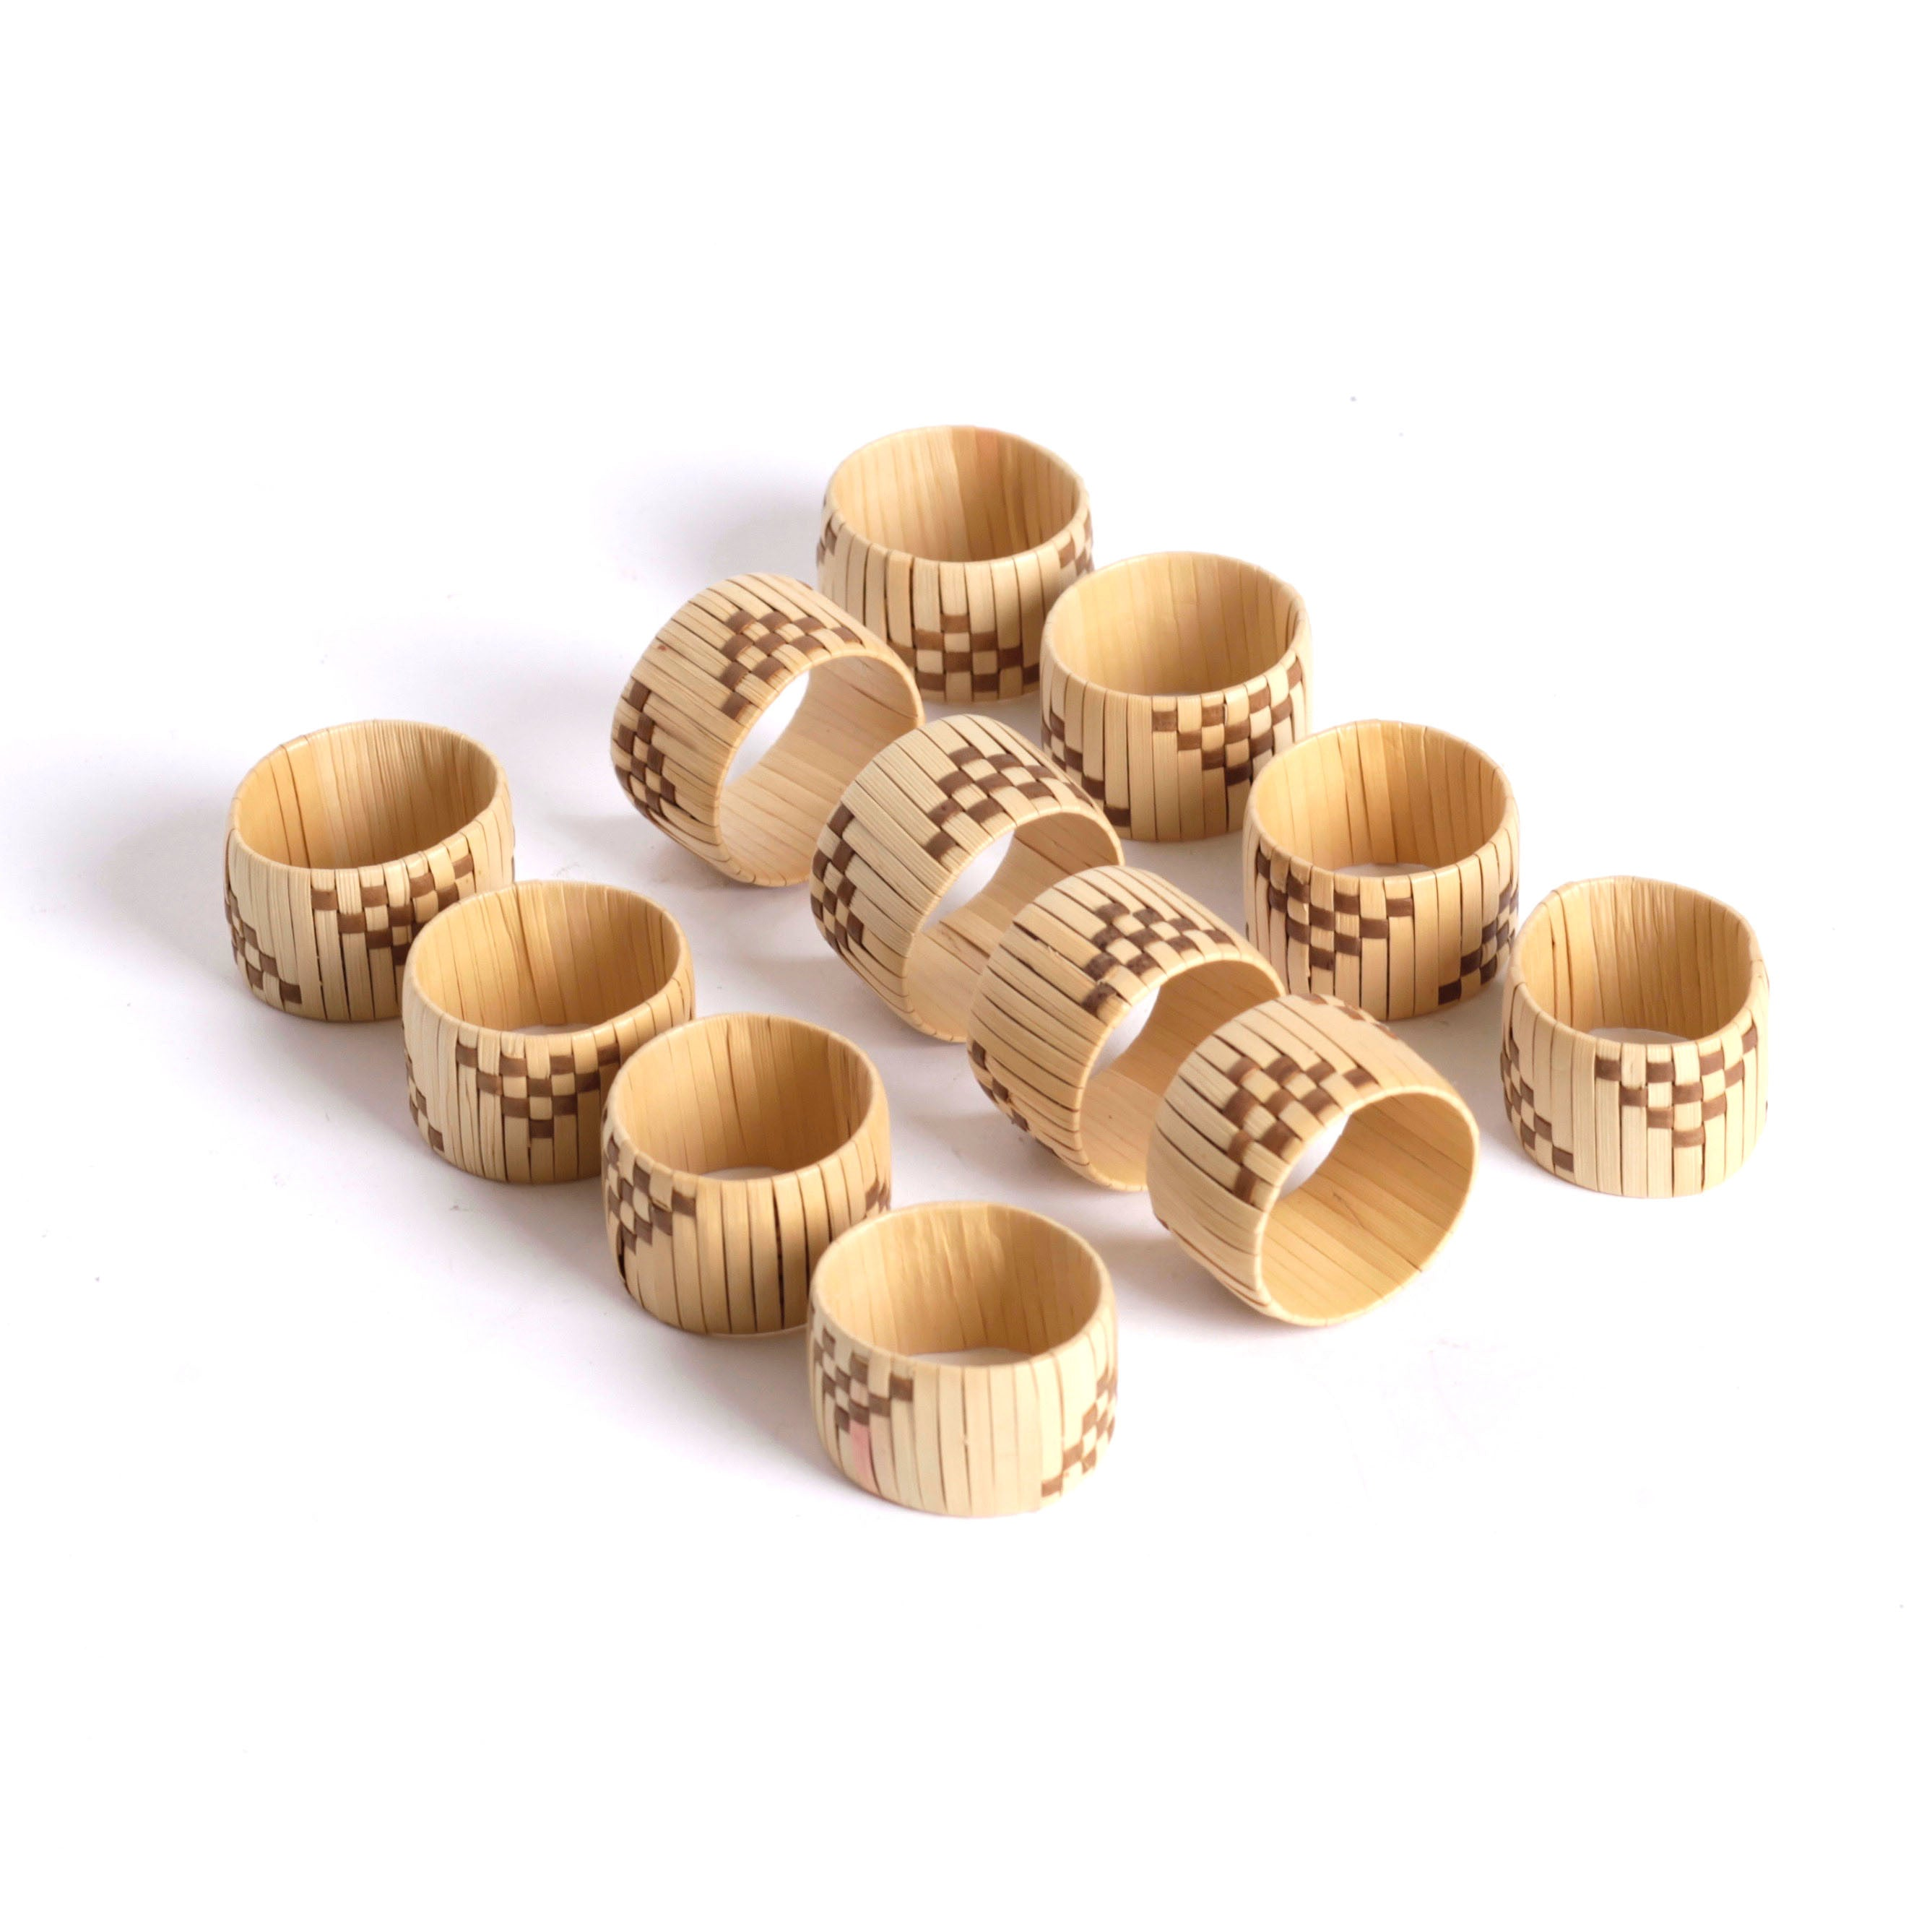 Wicker Napkin Rings (12)